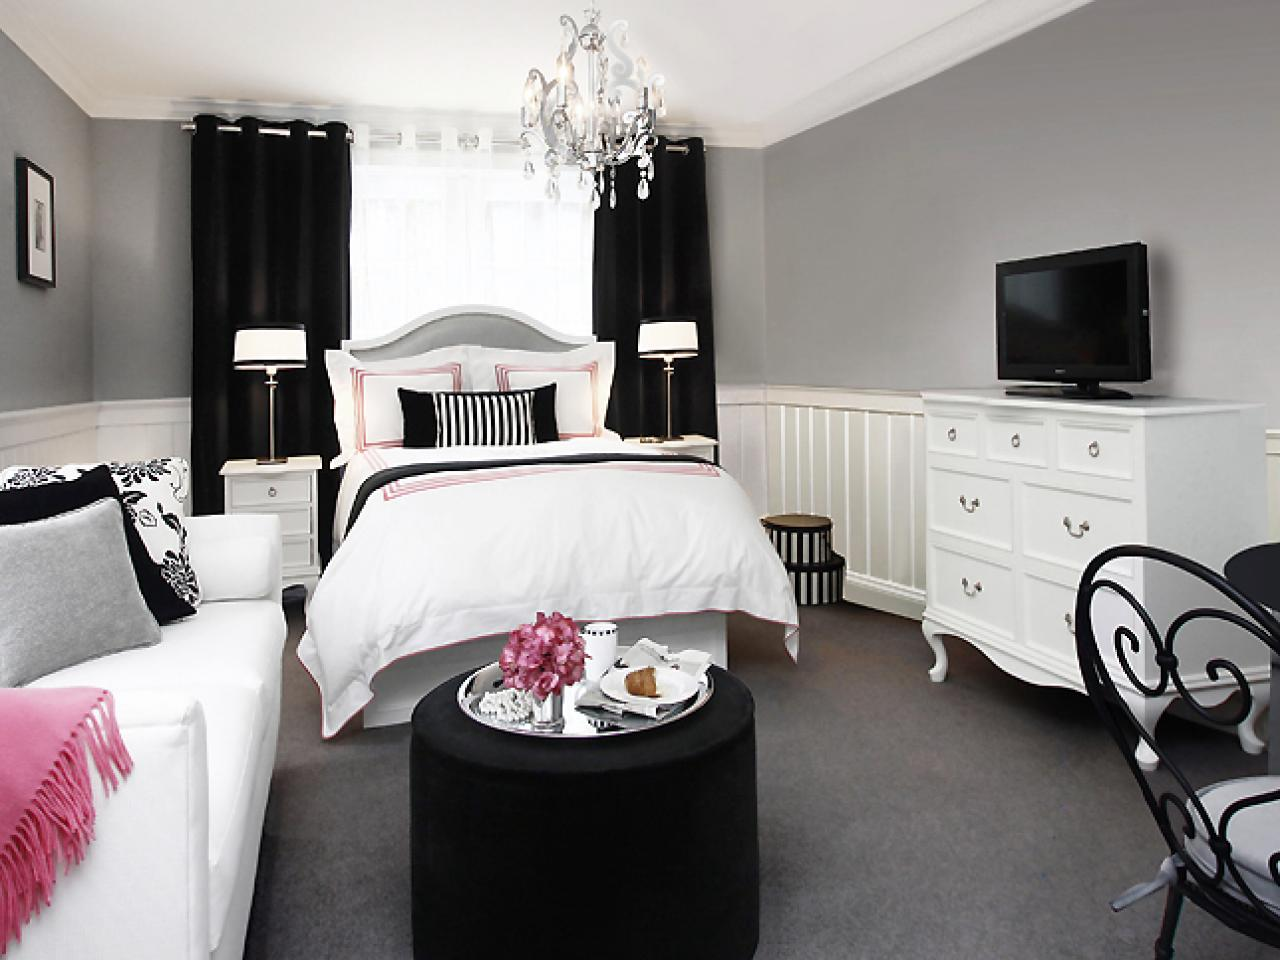 Optimize your small bedroom design hgtv Black and white room decor